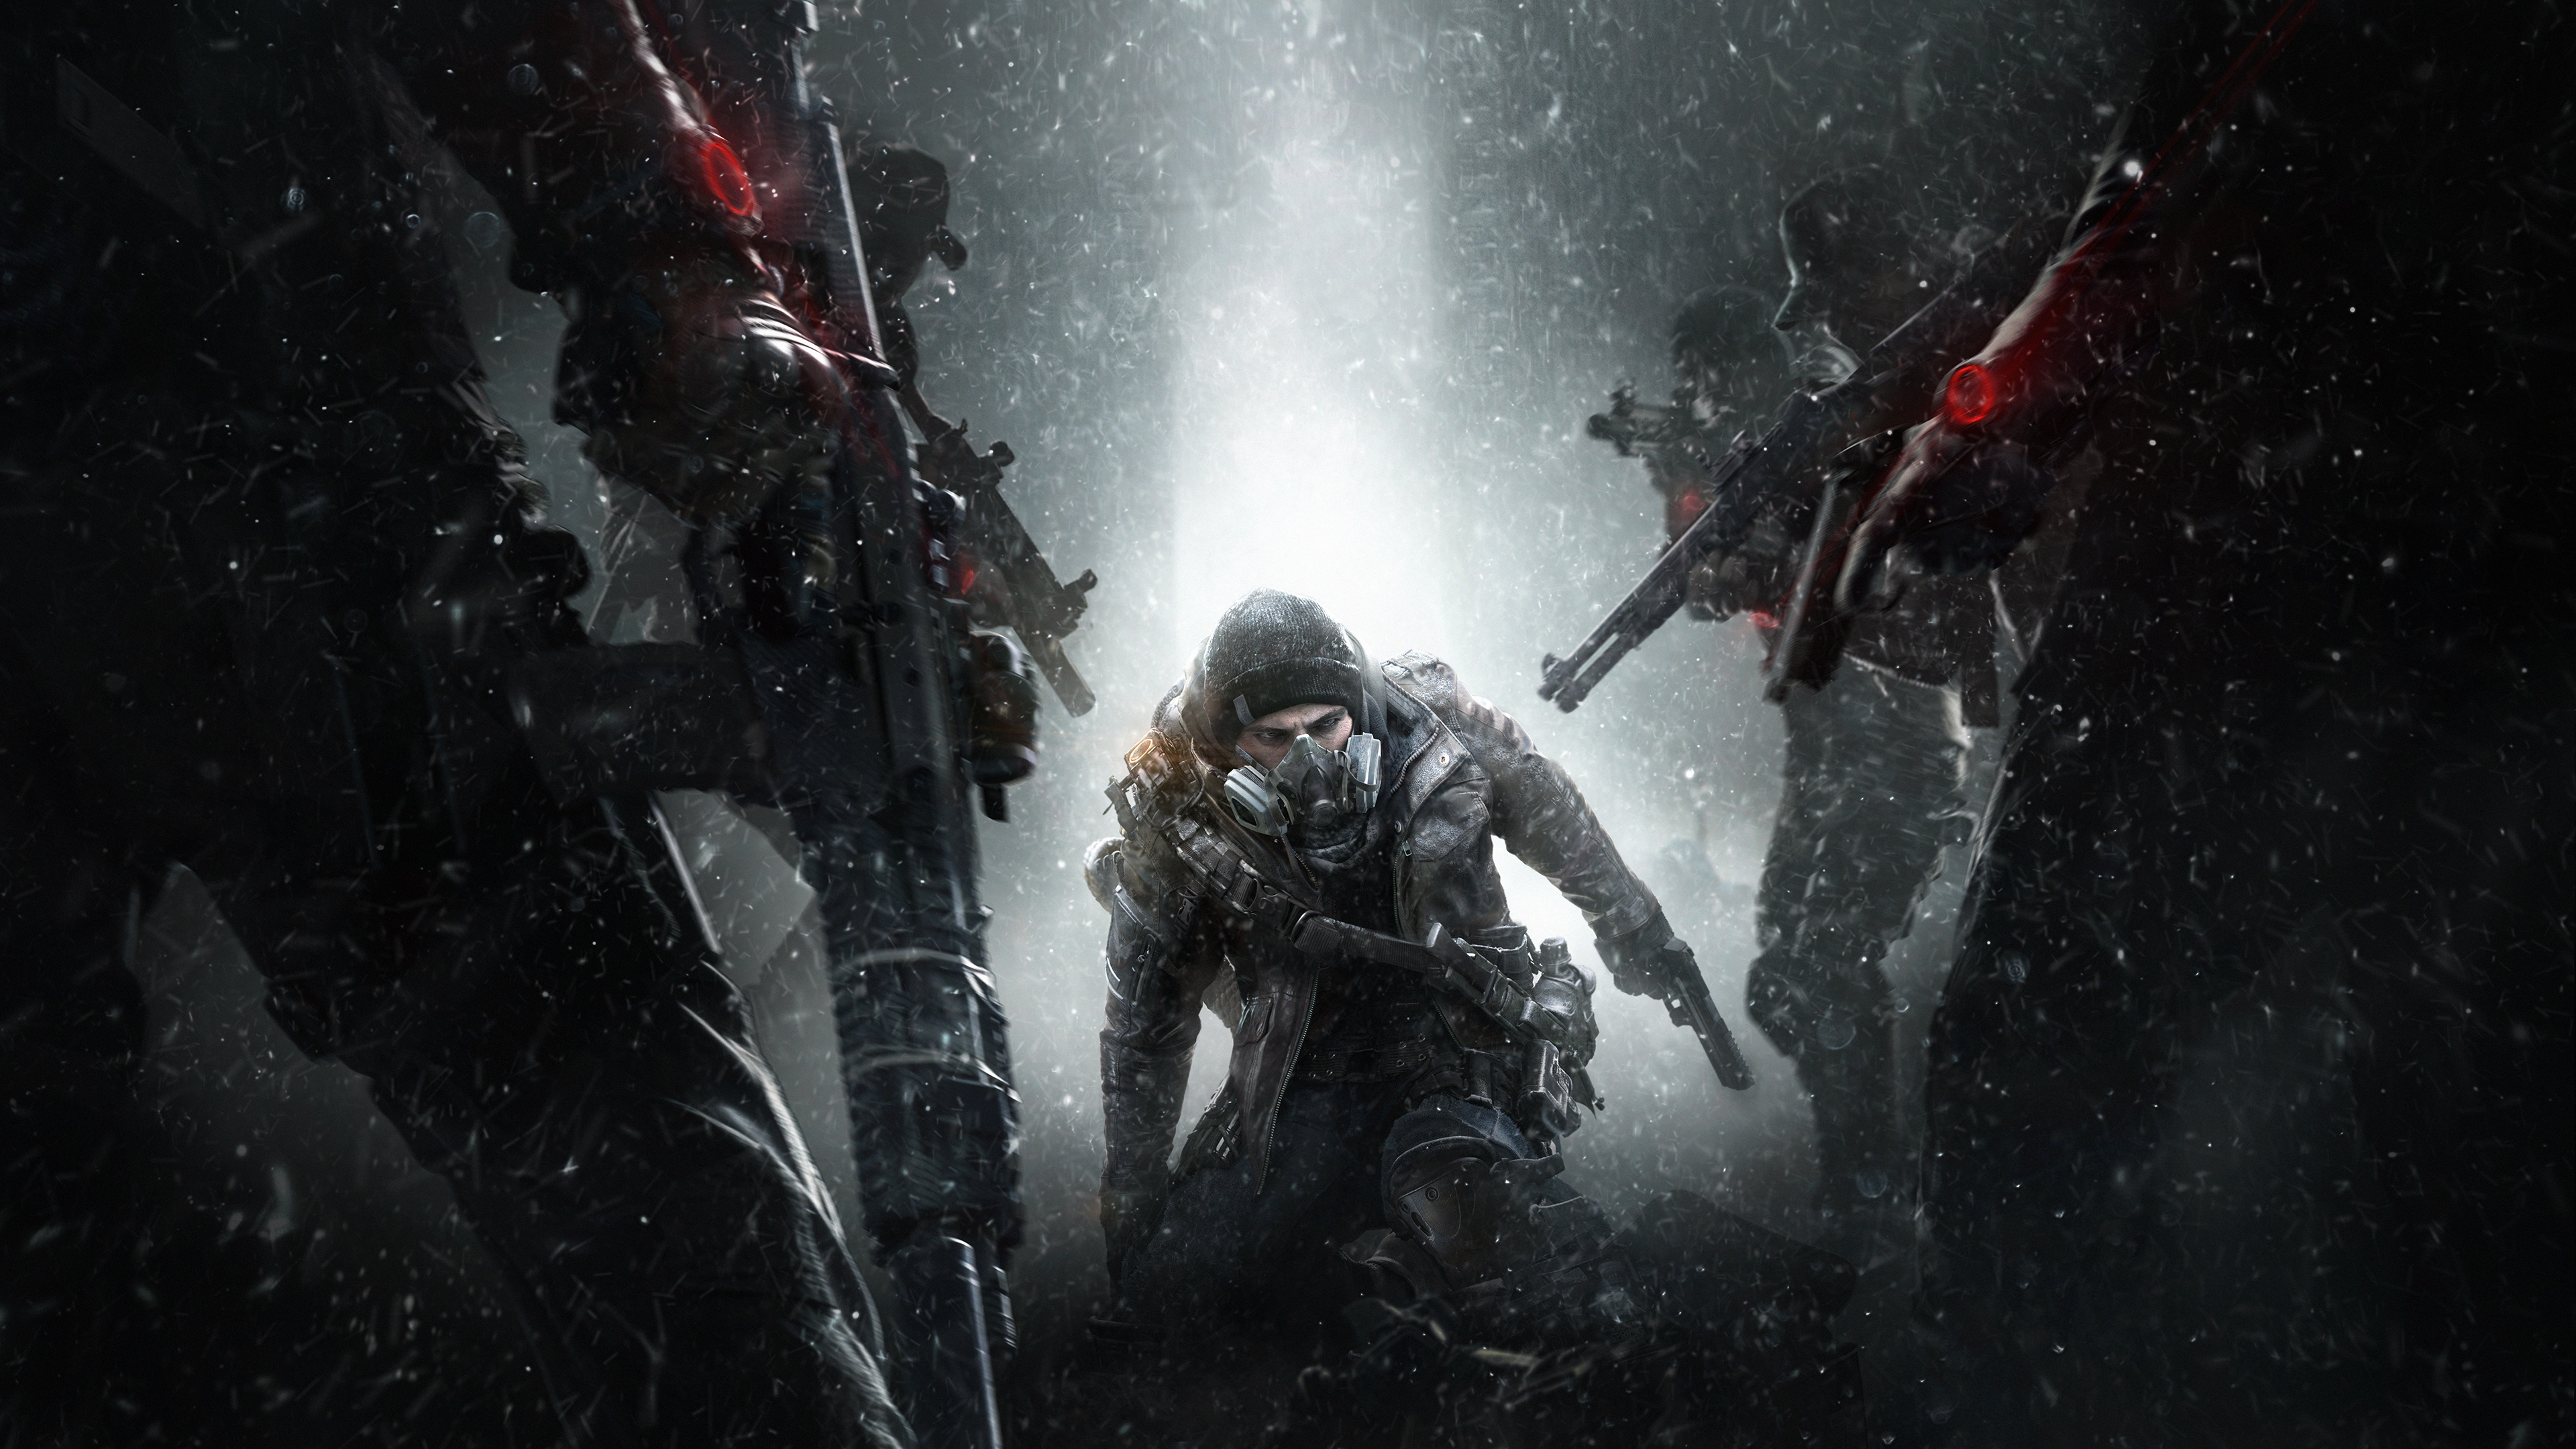 Tom Clancy's The Division Wallpapers, Pictures, Images